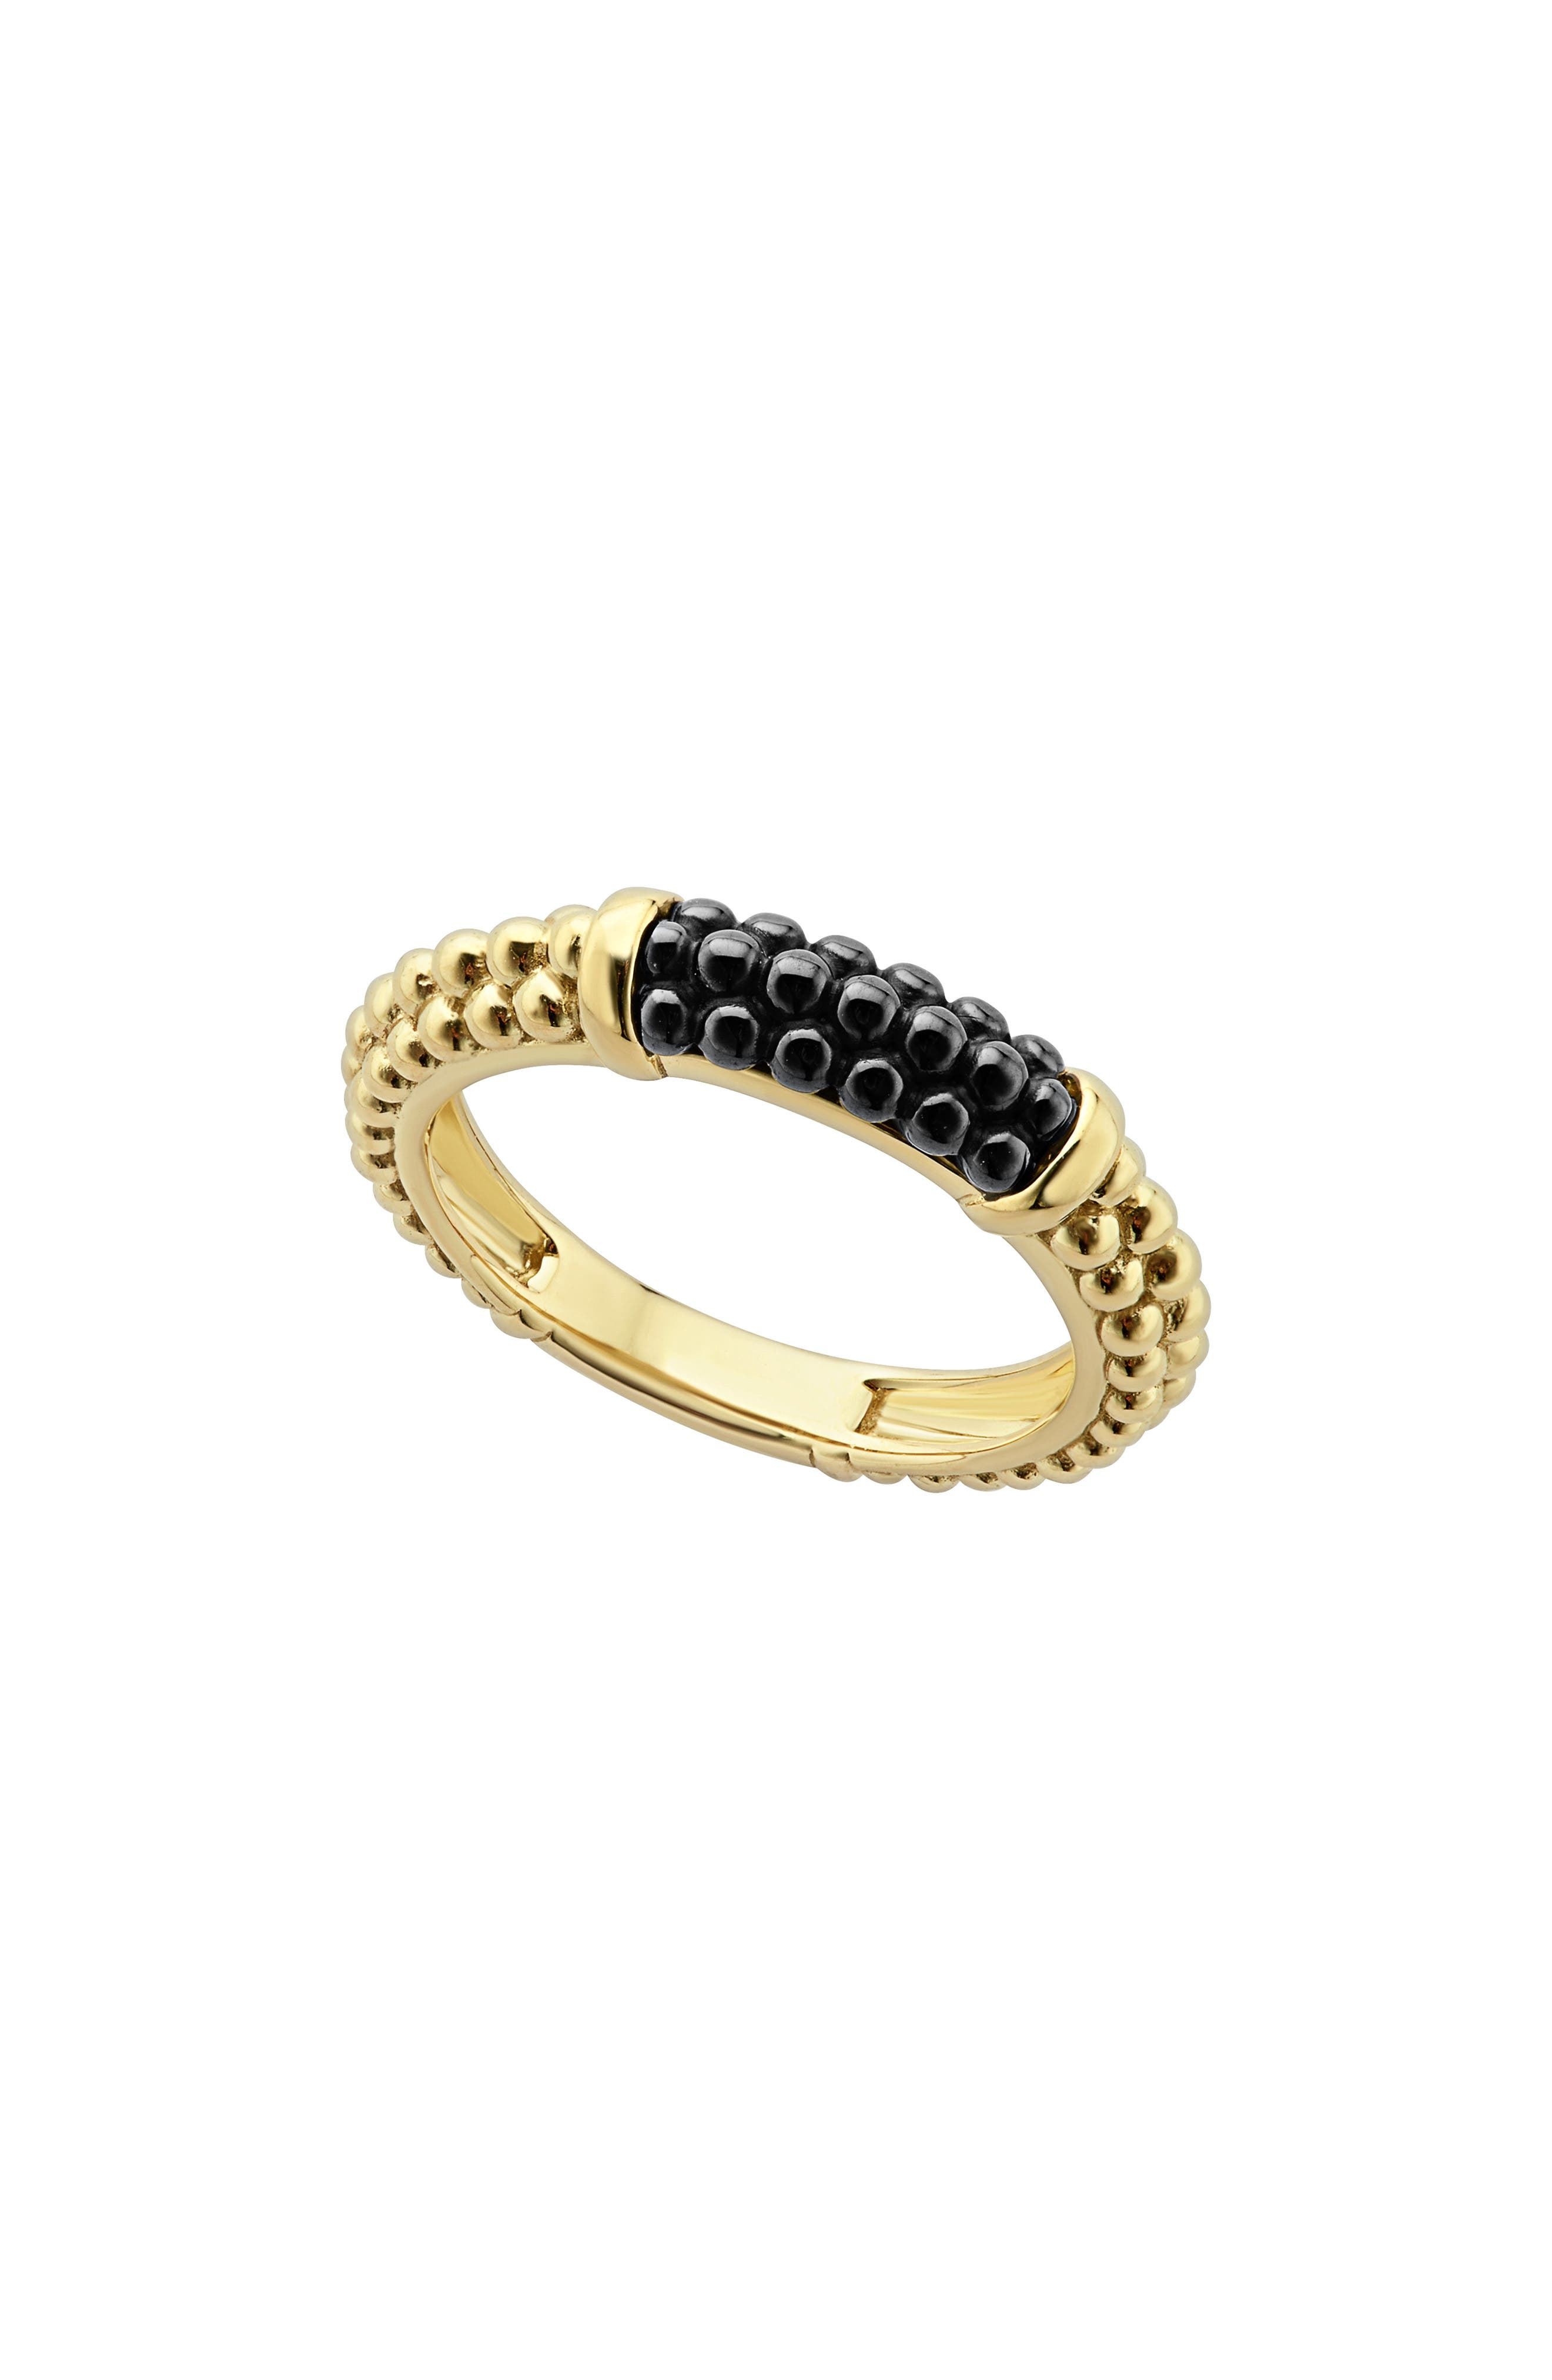 Gold & Black Caviar Stacking Ring,                             Main thumbnail 1, color,                             GOLD